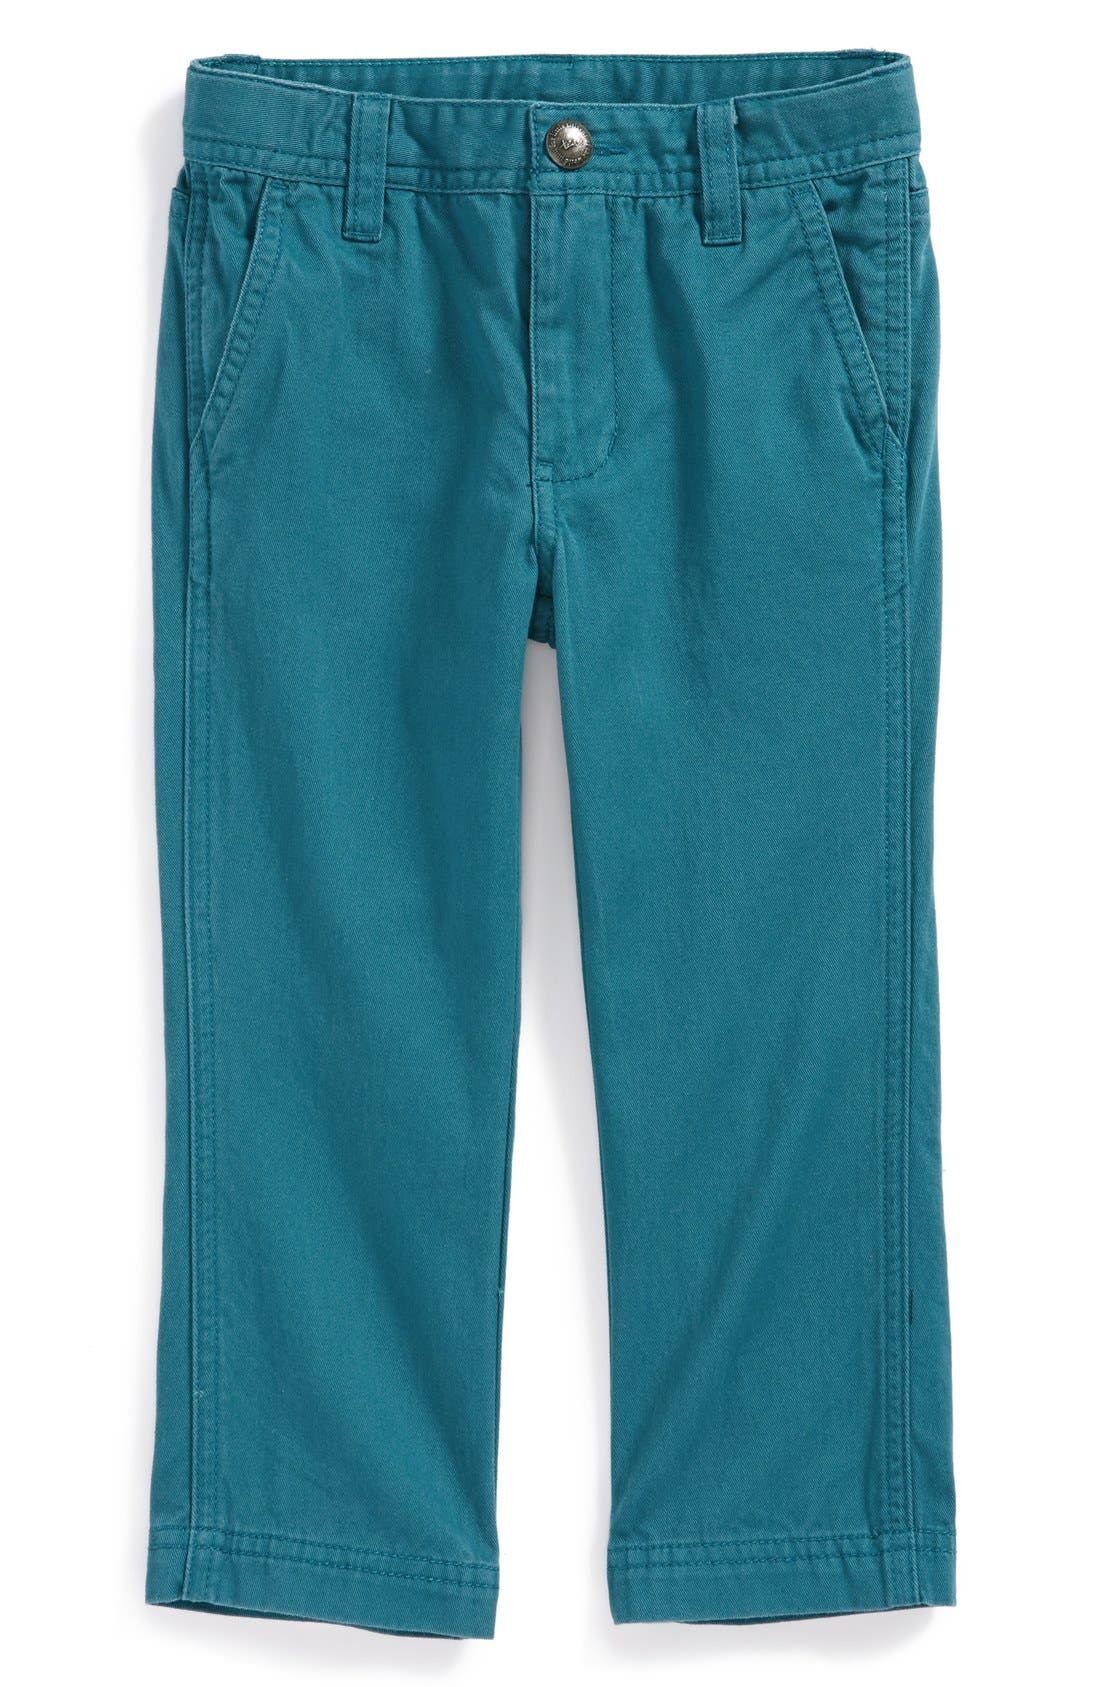 Main Image - Tea Collection Twill Chinos (Toddler Boys)